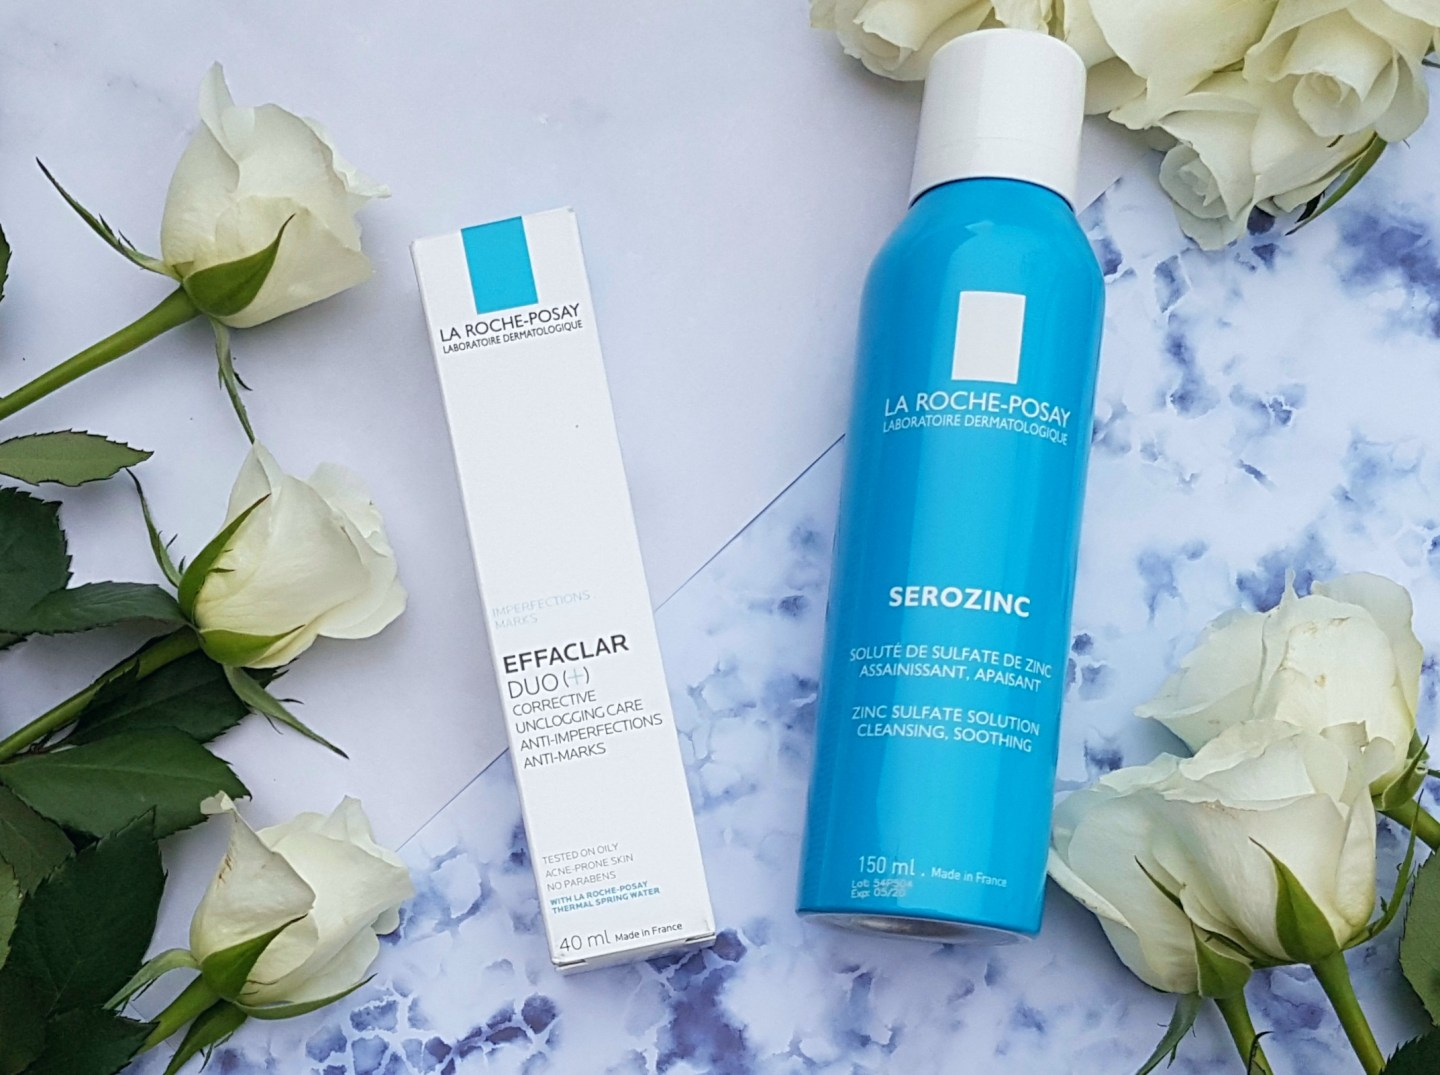 Review: La Roche-Posay